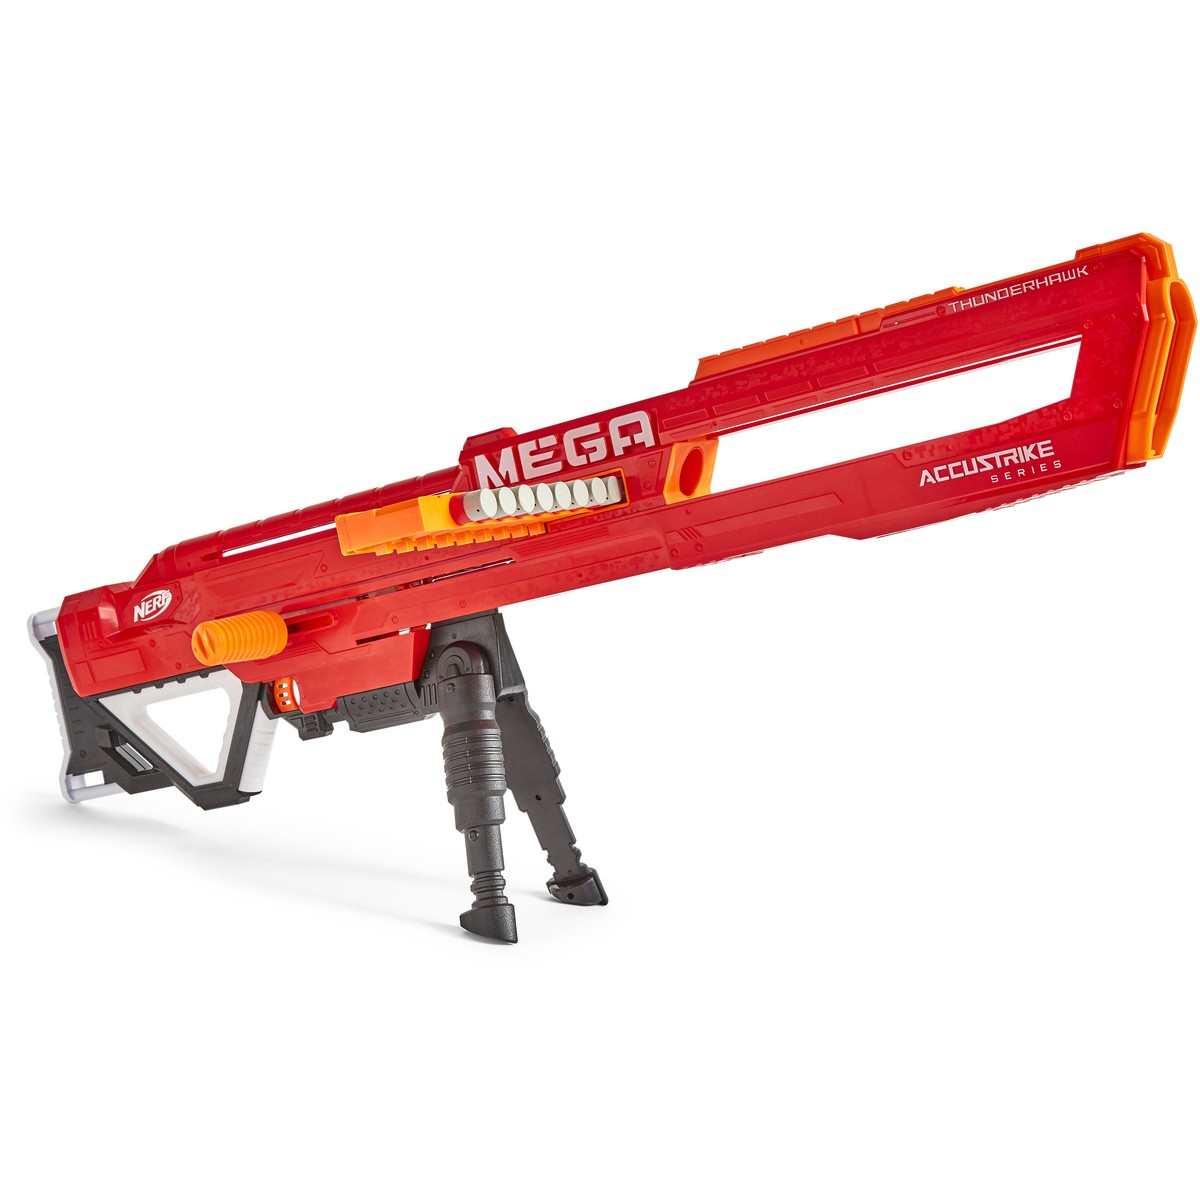 Thunderhawk | Nerf Mega used in our Fortnite Birthday Parties